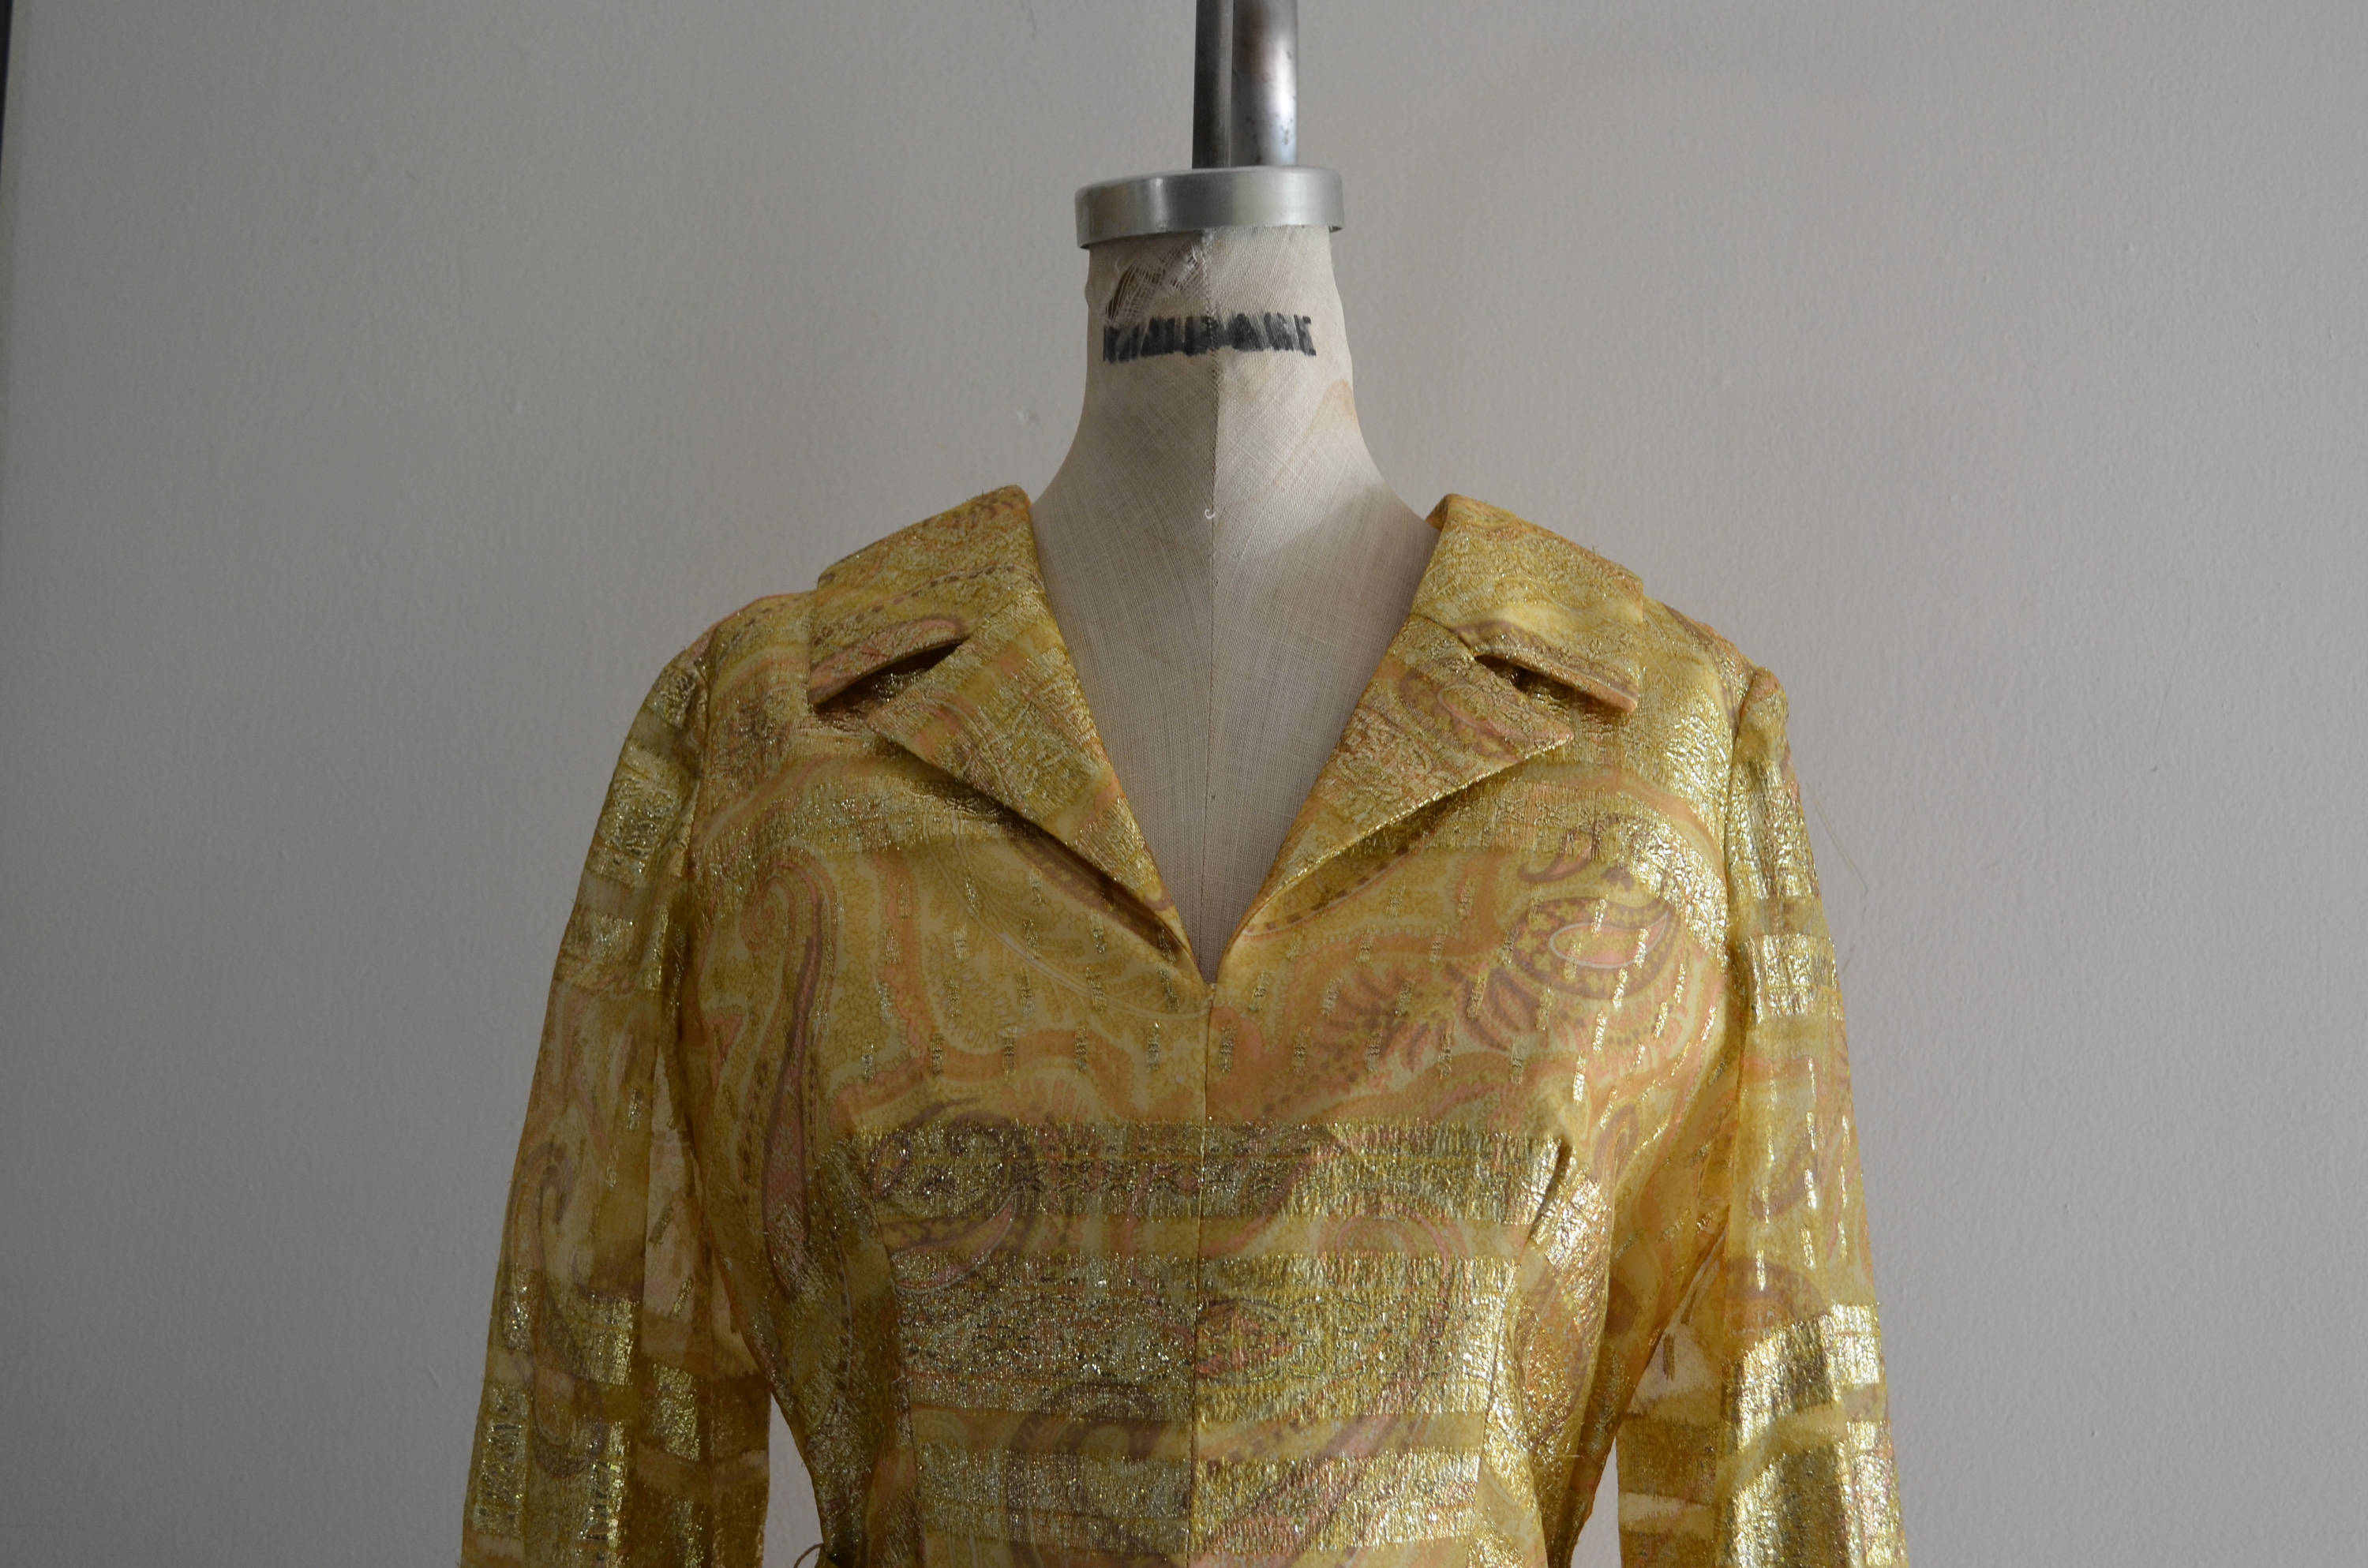 1970S Duvall's Metallic Gold Parsley Brocade Yellow Glitter Belted High Waist Midi Dress Long Sleeve